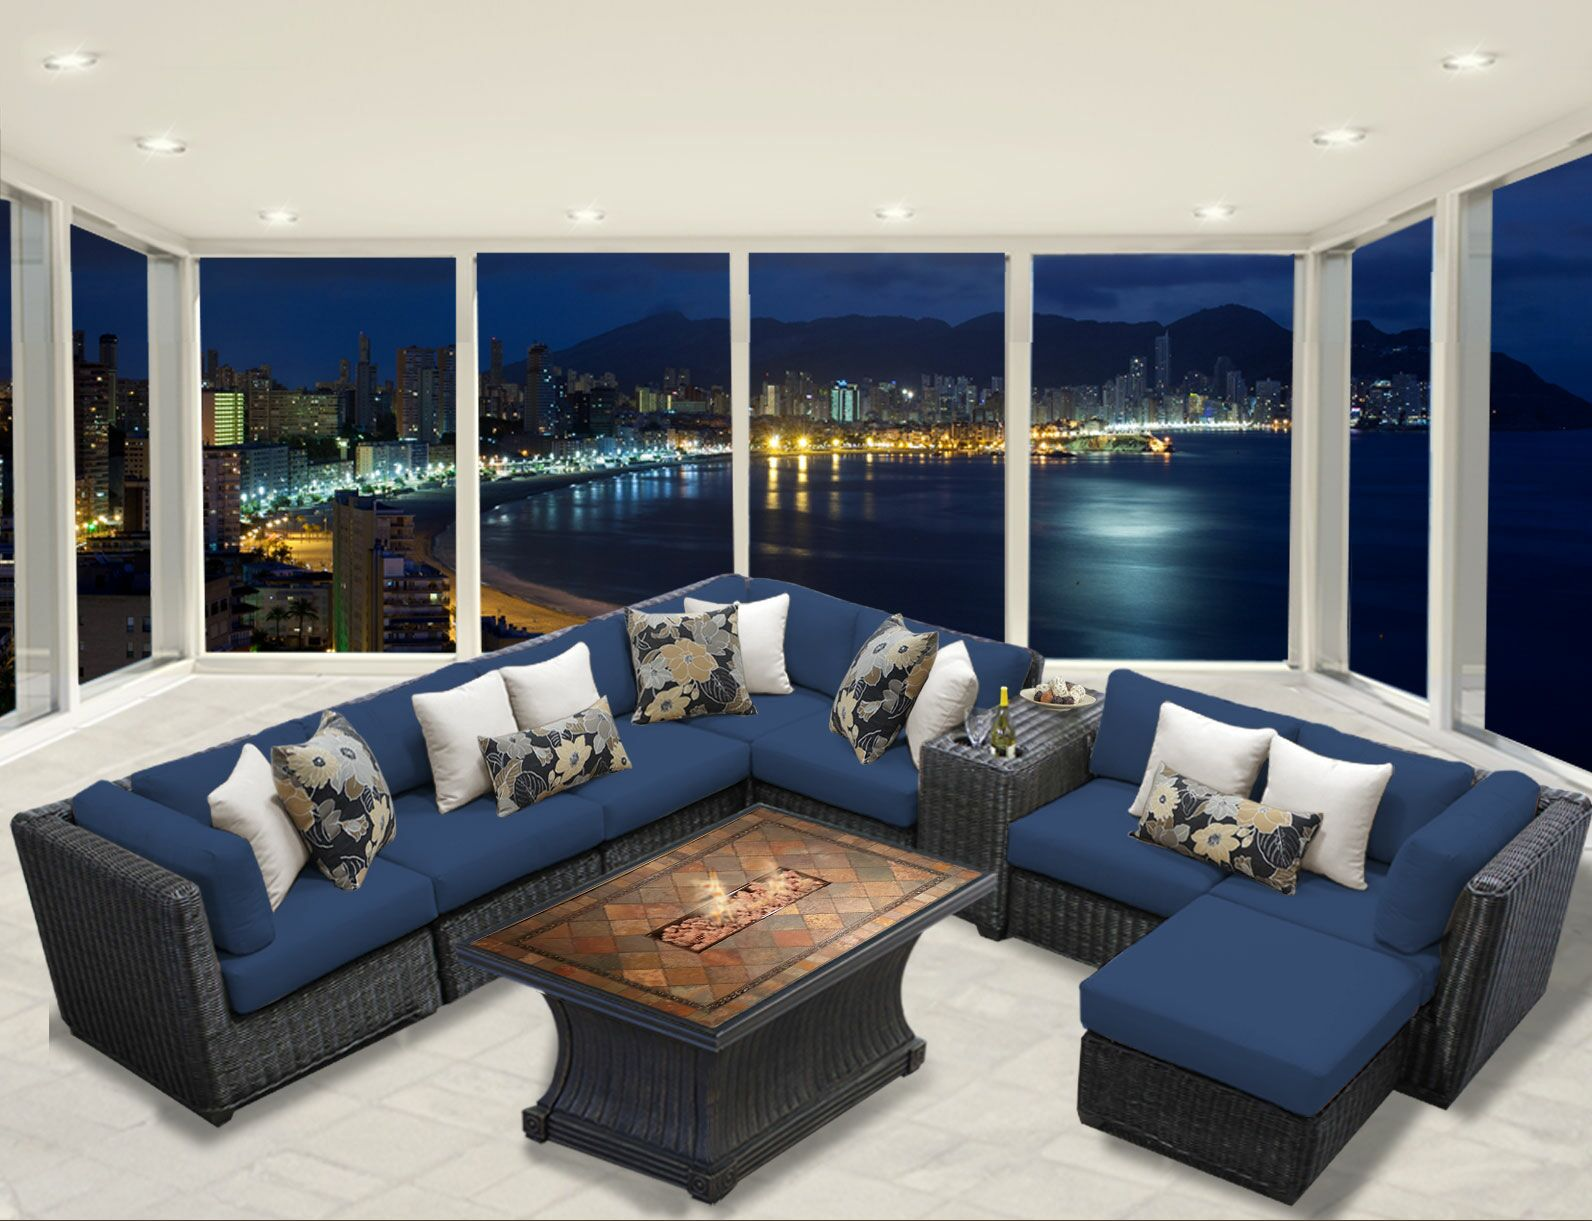 Eldredge 10 Piece Sectional Set with Cushions Color: Navy